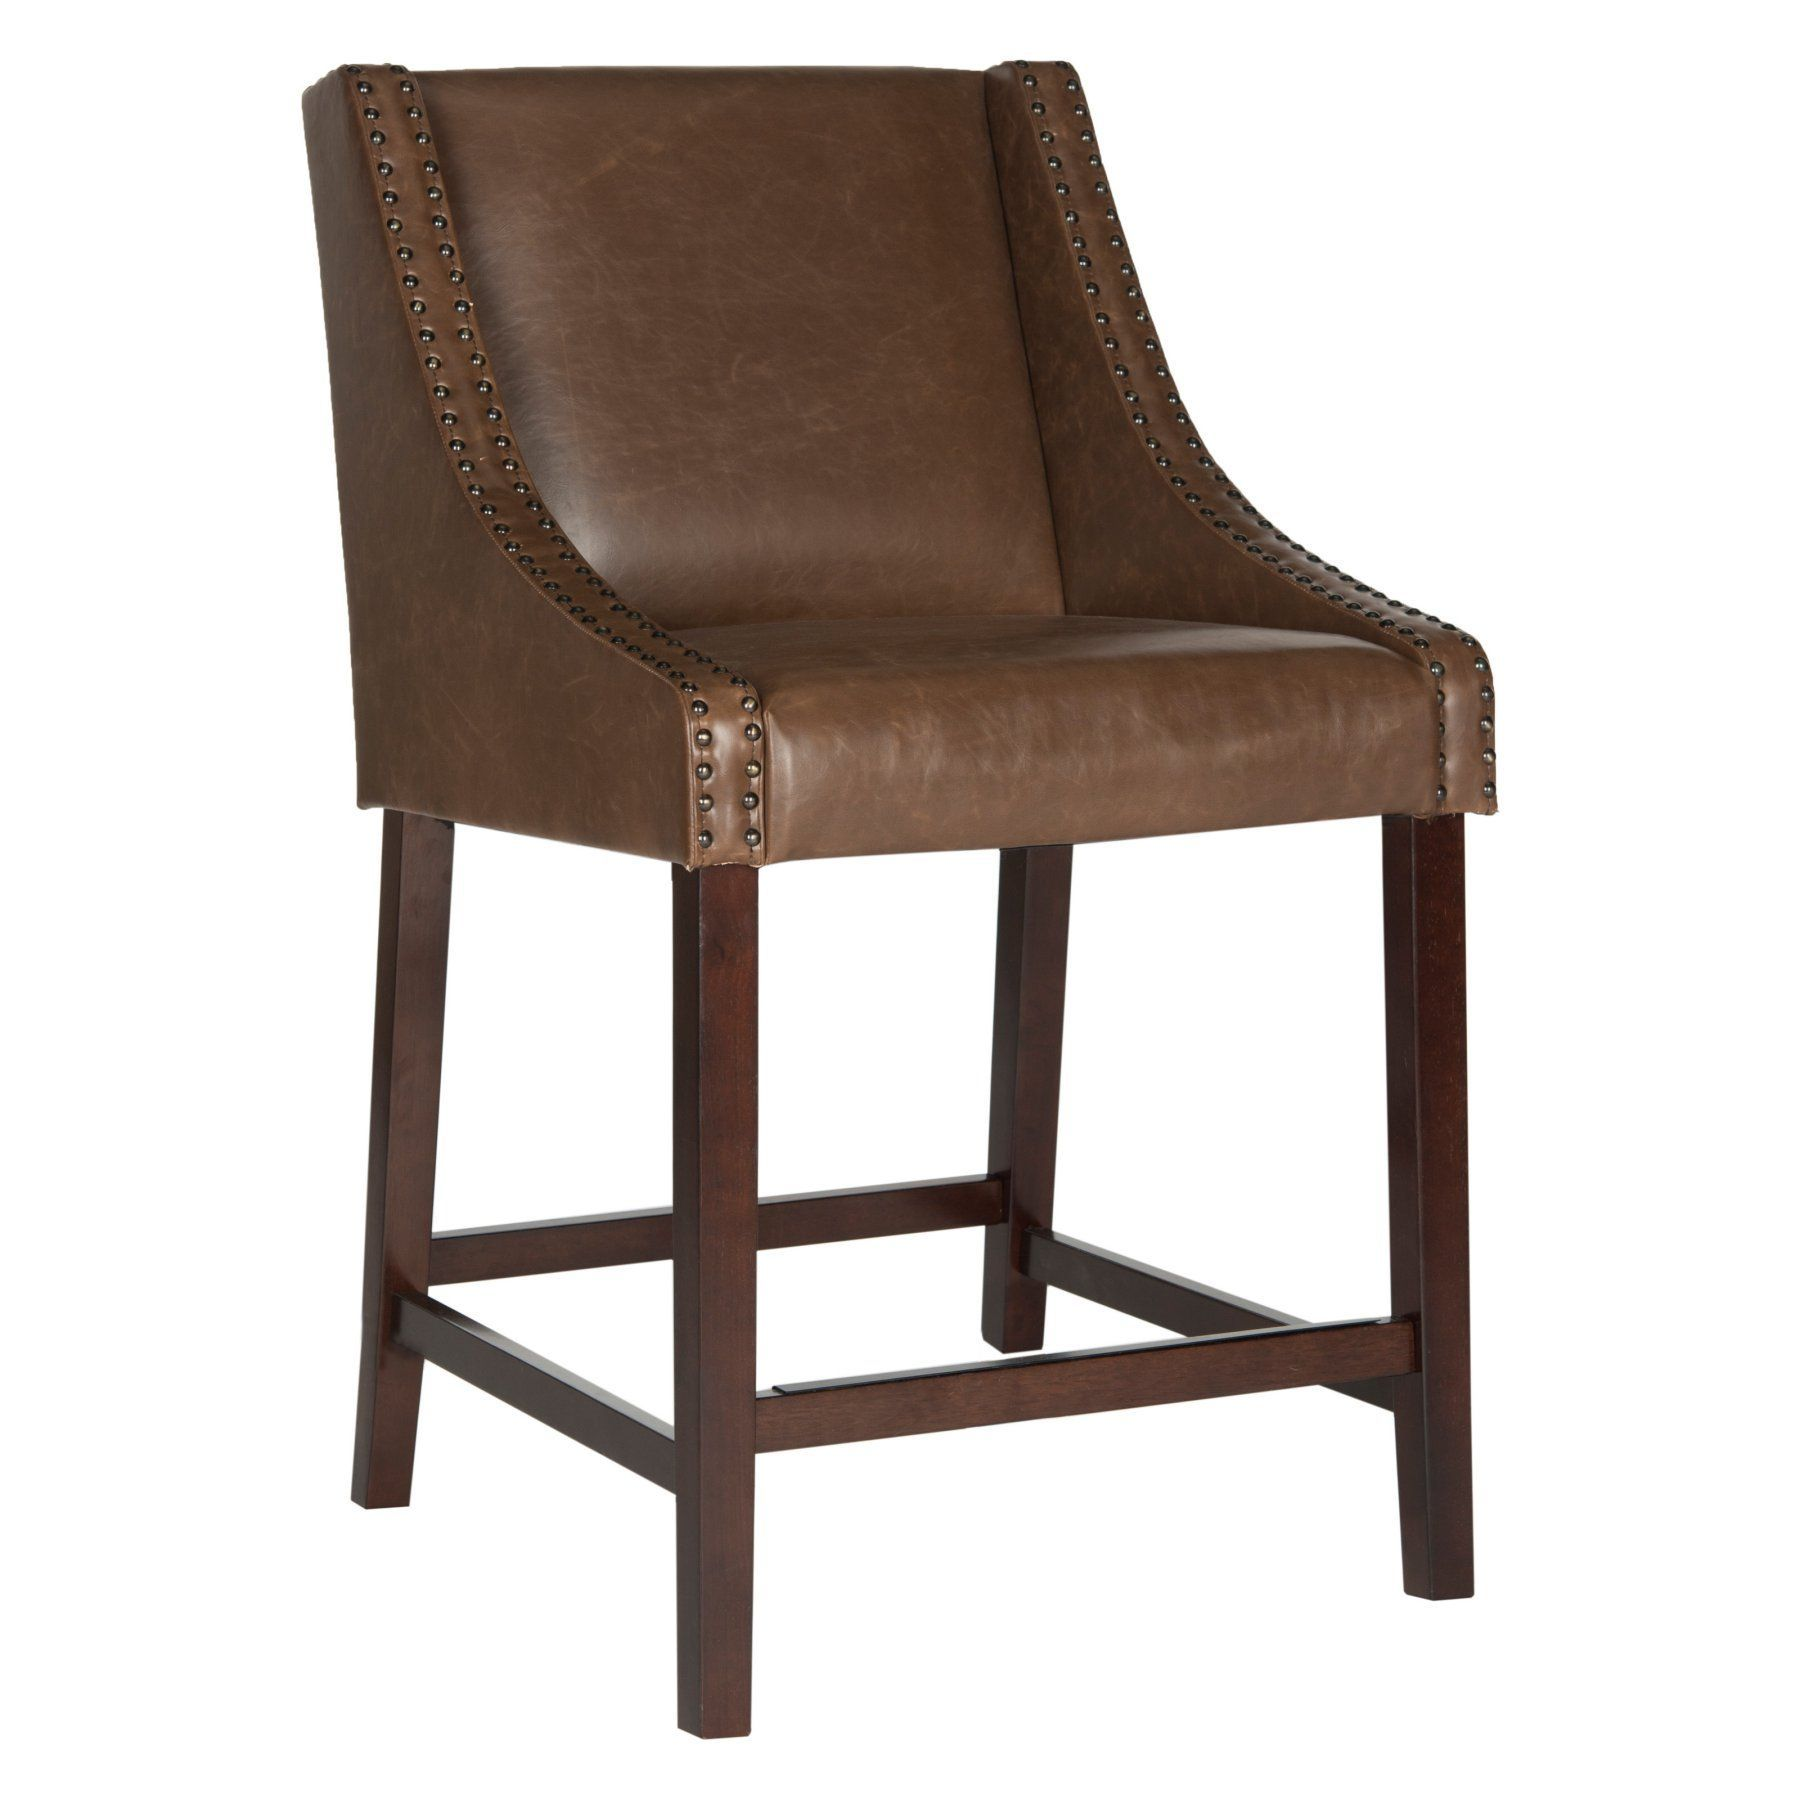 Prime Safavieh Dylan 25 5 In Leather Counter Stool Fox6221E Bralicious Painted Fabric Chair Ideas Braliciousco